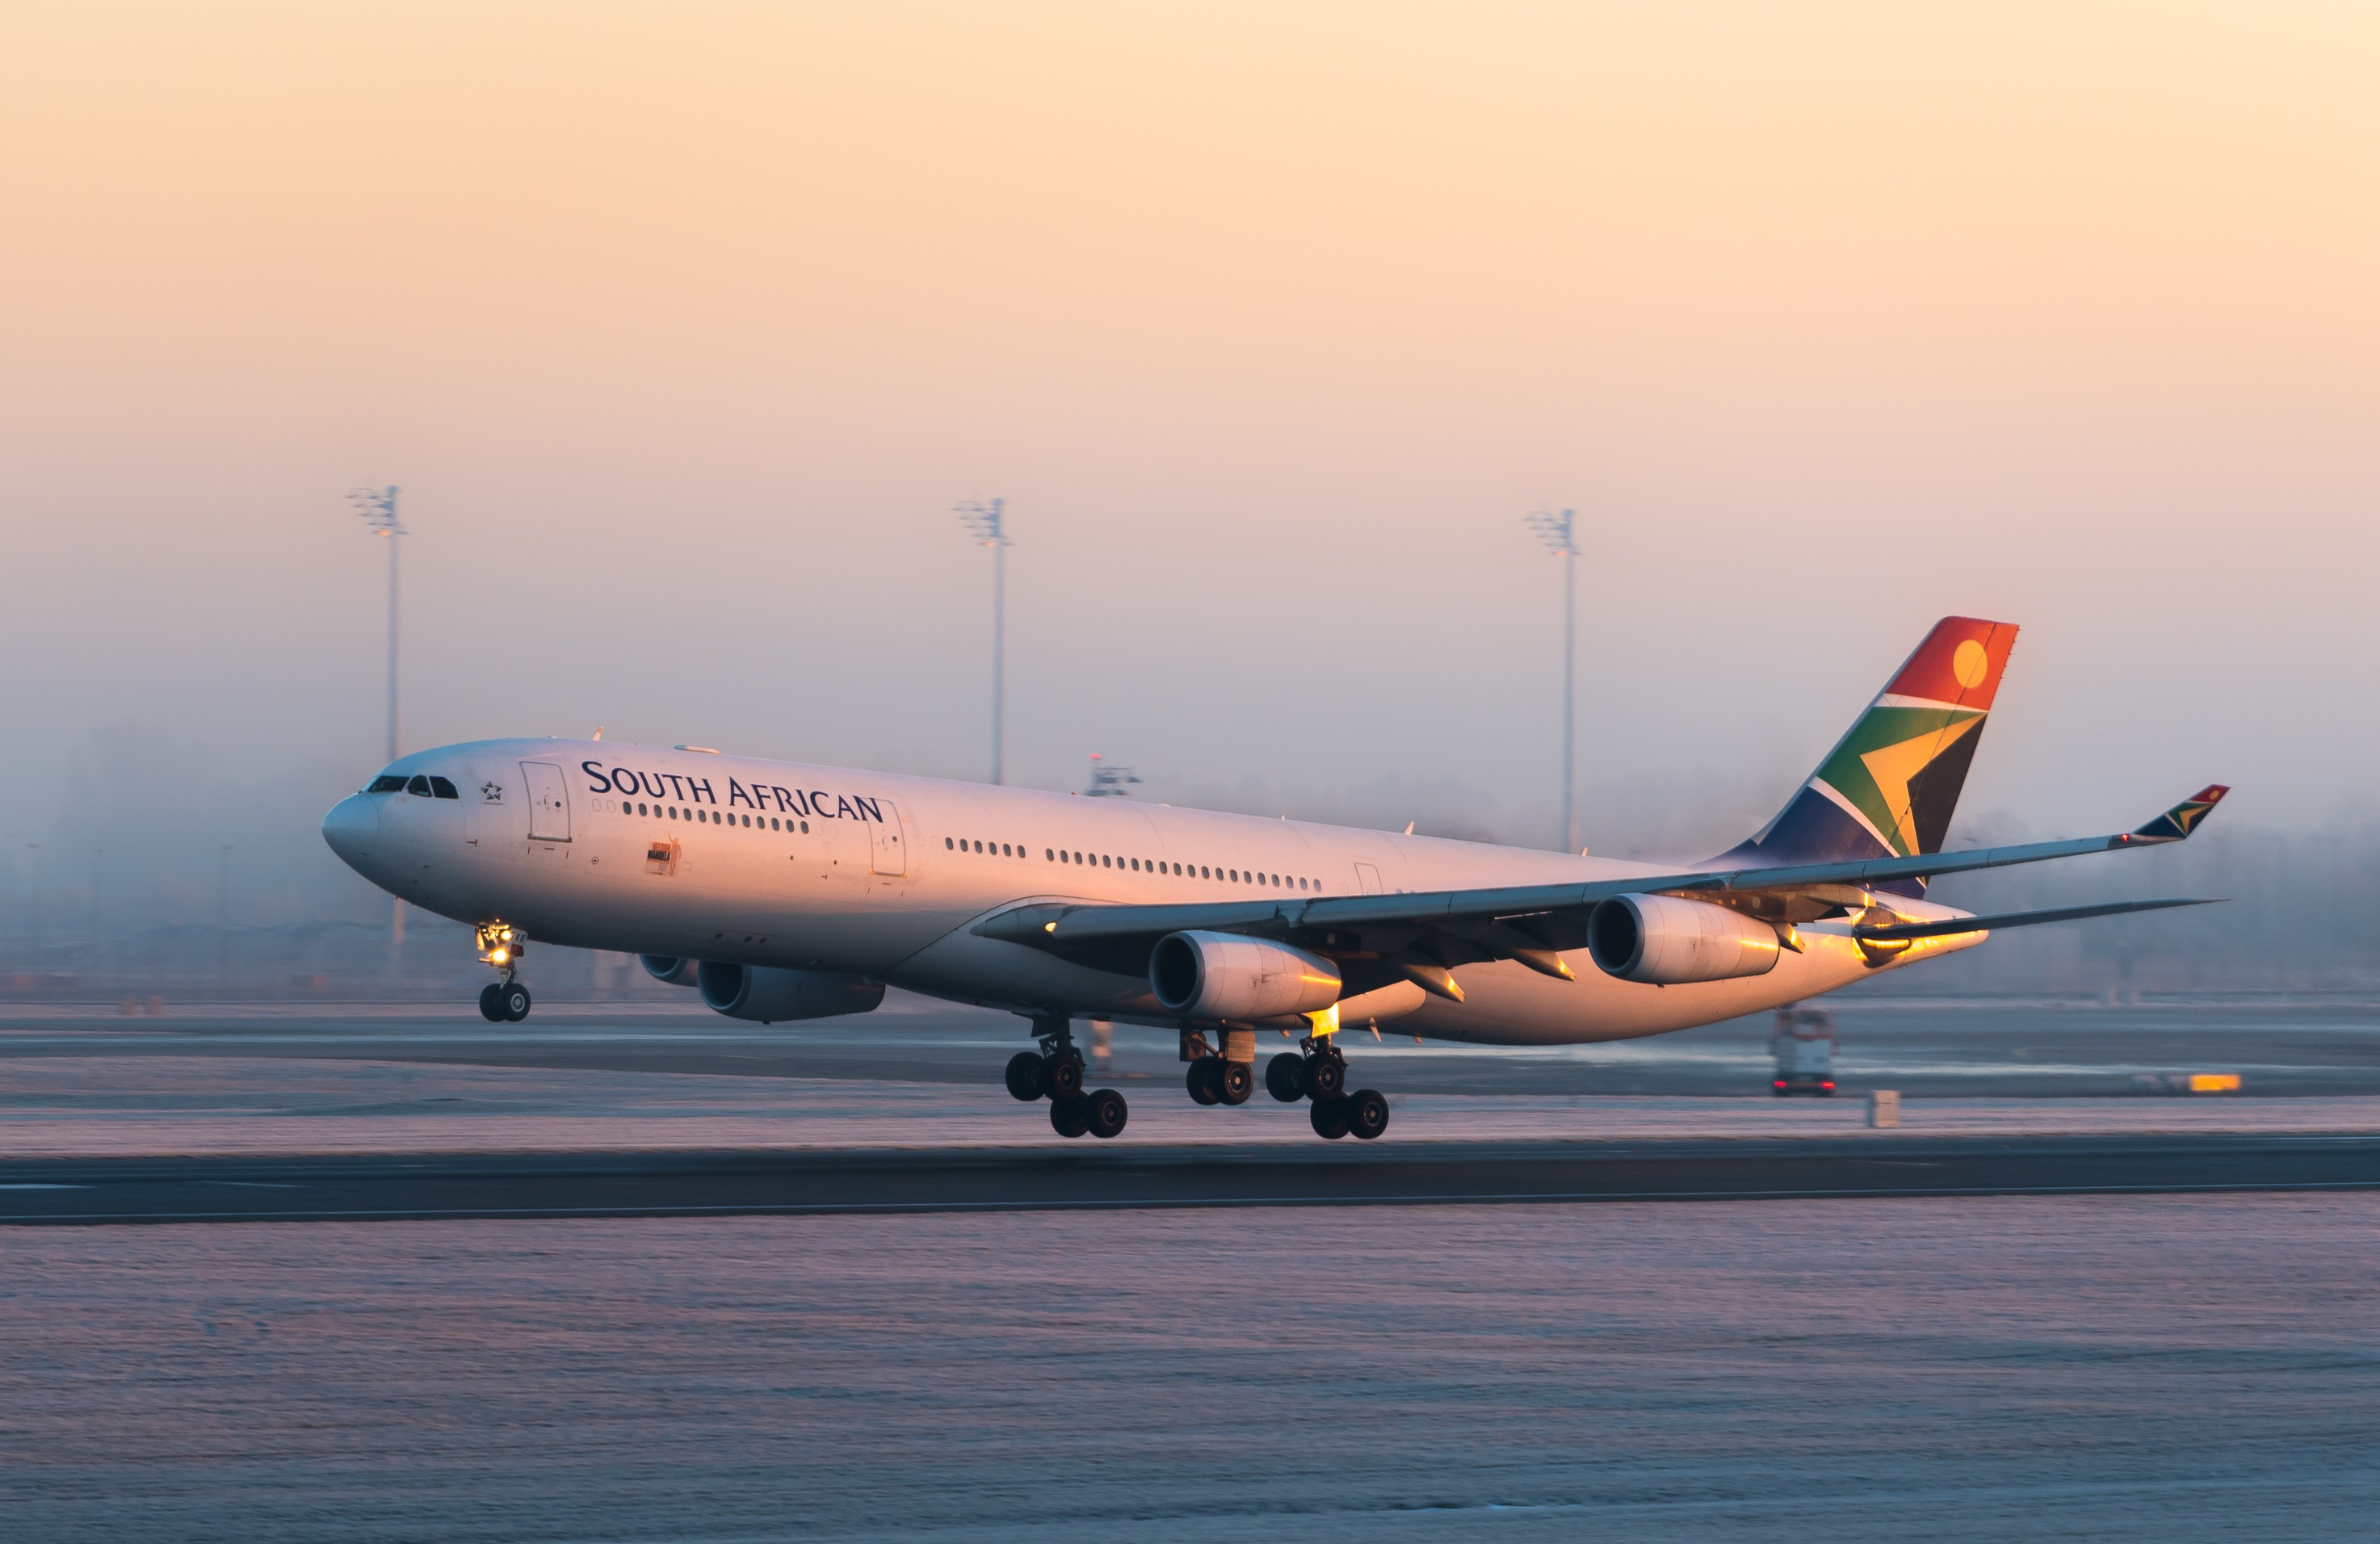 Opposition remains highly suspicious over SAA rescue funding